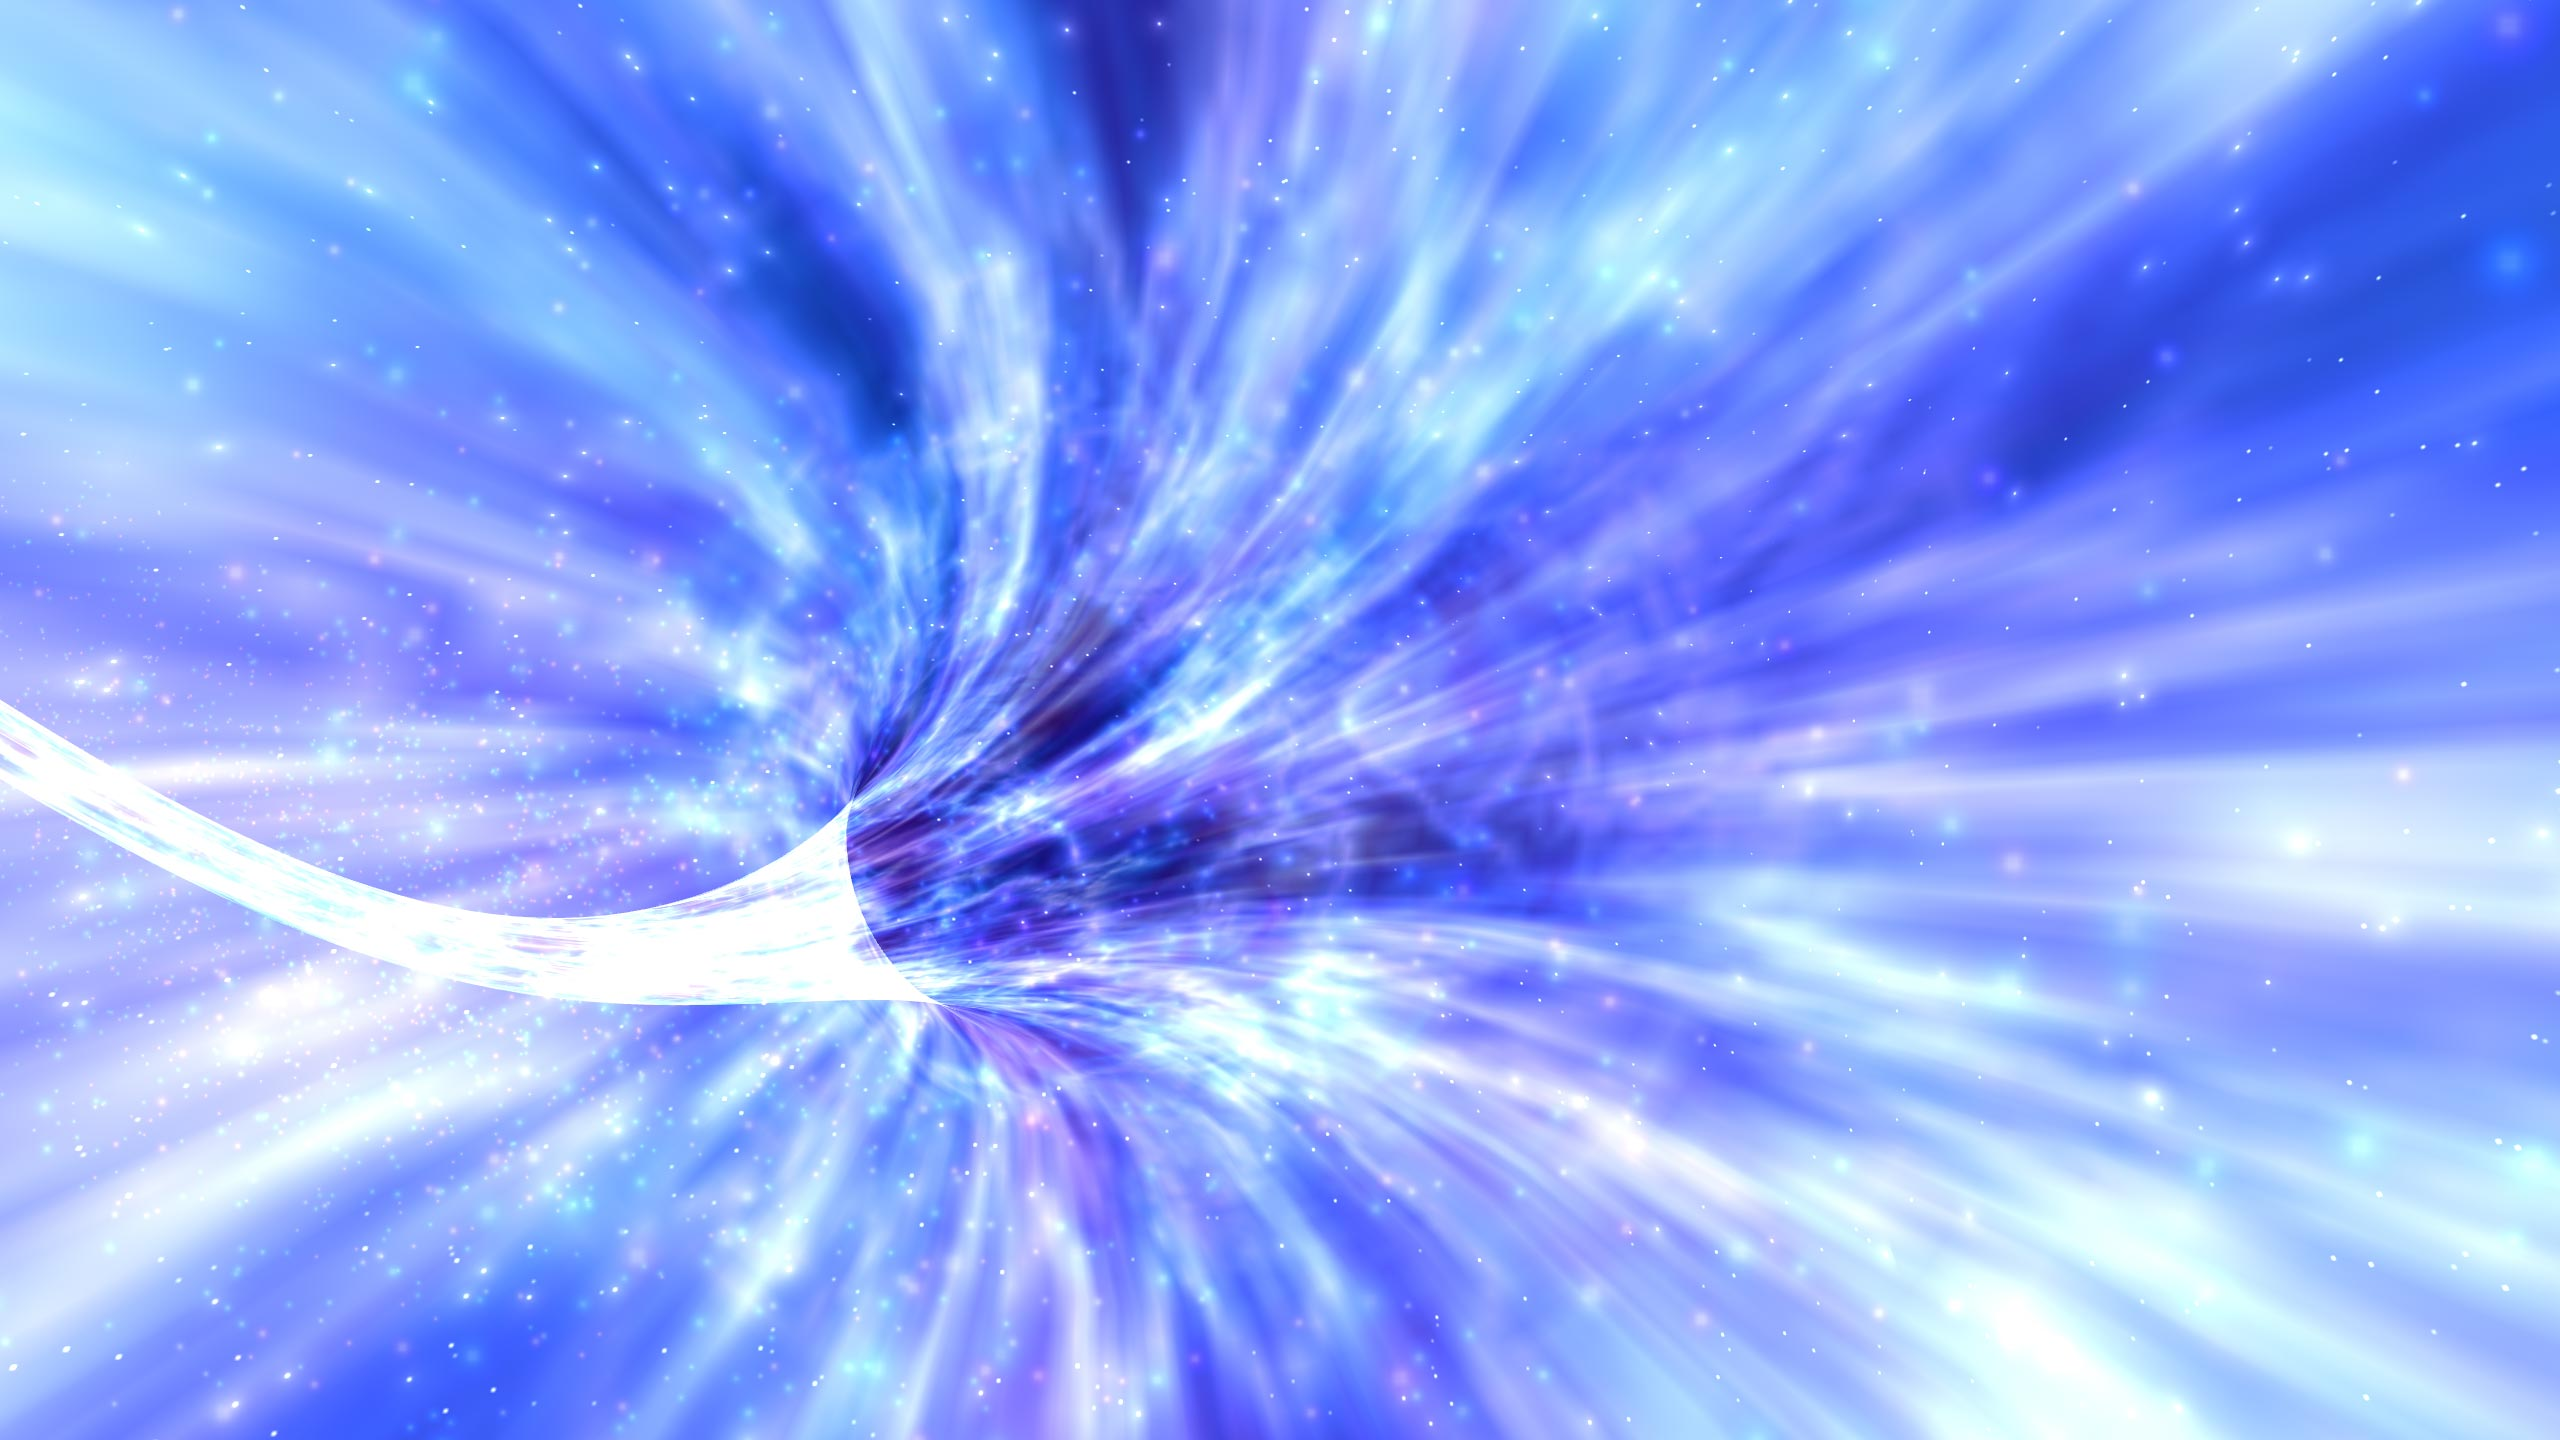 Space Wormhole 3D Animate Your Desktop Wallpaper